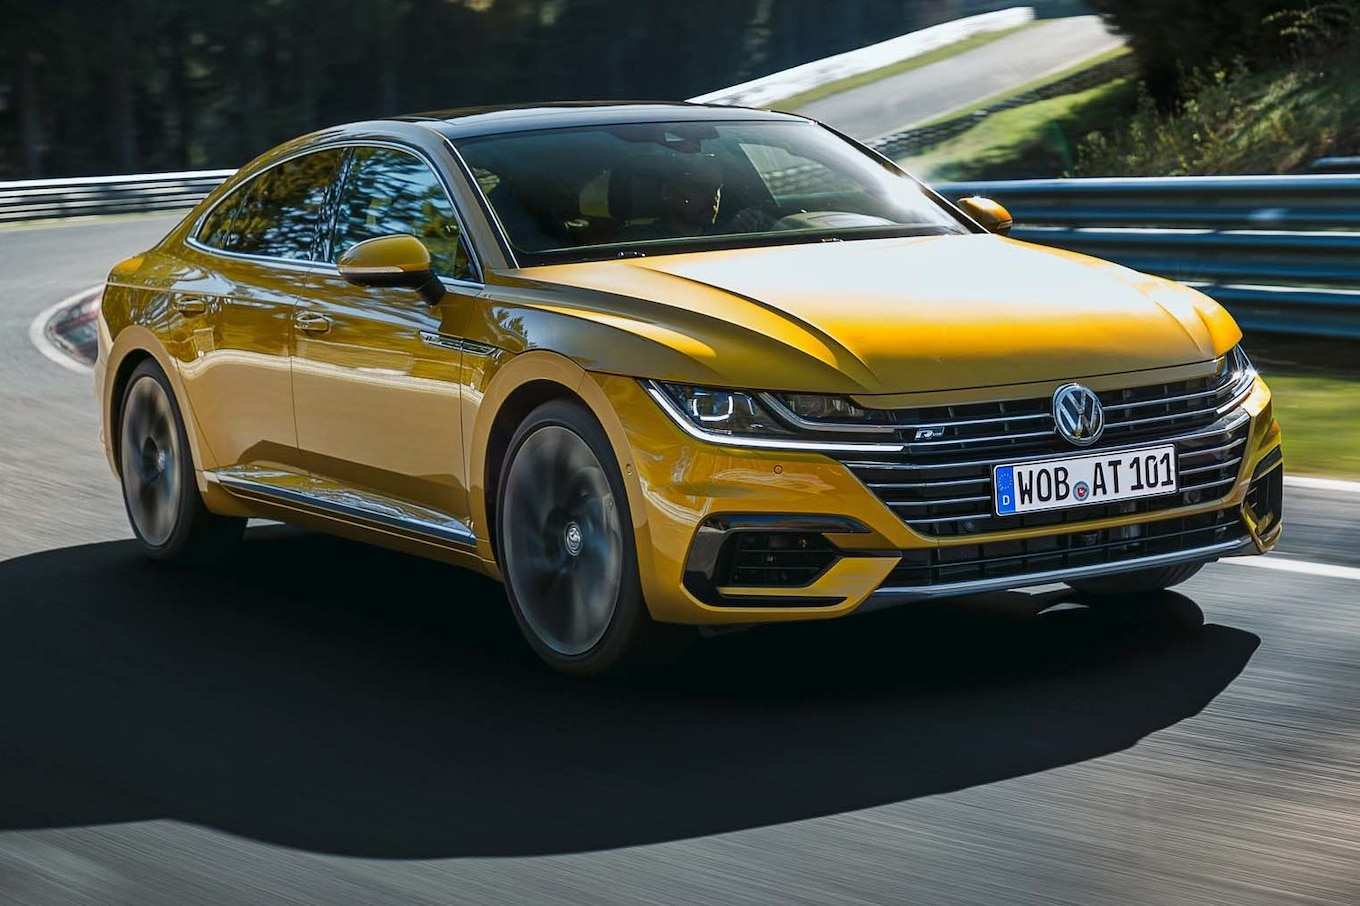 86 The Best Vw 2019 Arteon Redesign And Review